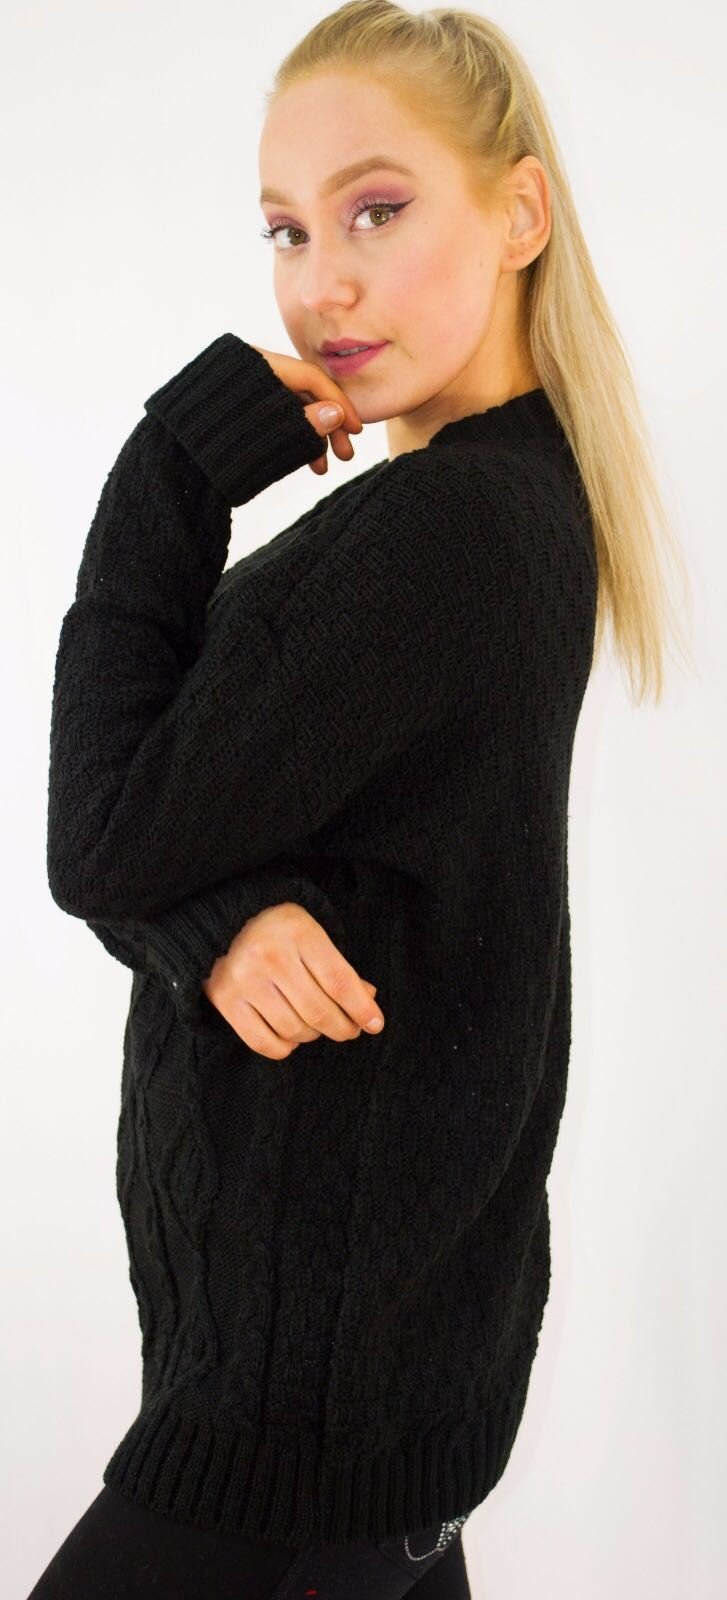 New-Ladies-Long-Manche-Chunky-Cable-Knitted-Jumper-crew-neck-hiver-Sweater-Top miniature 4